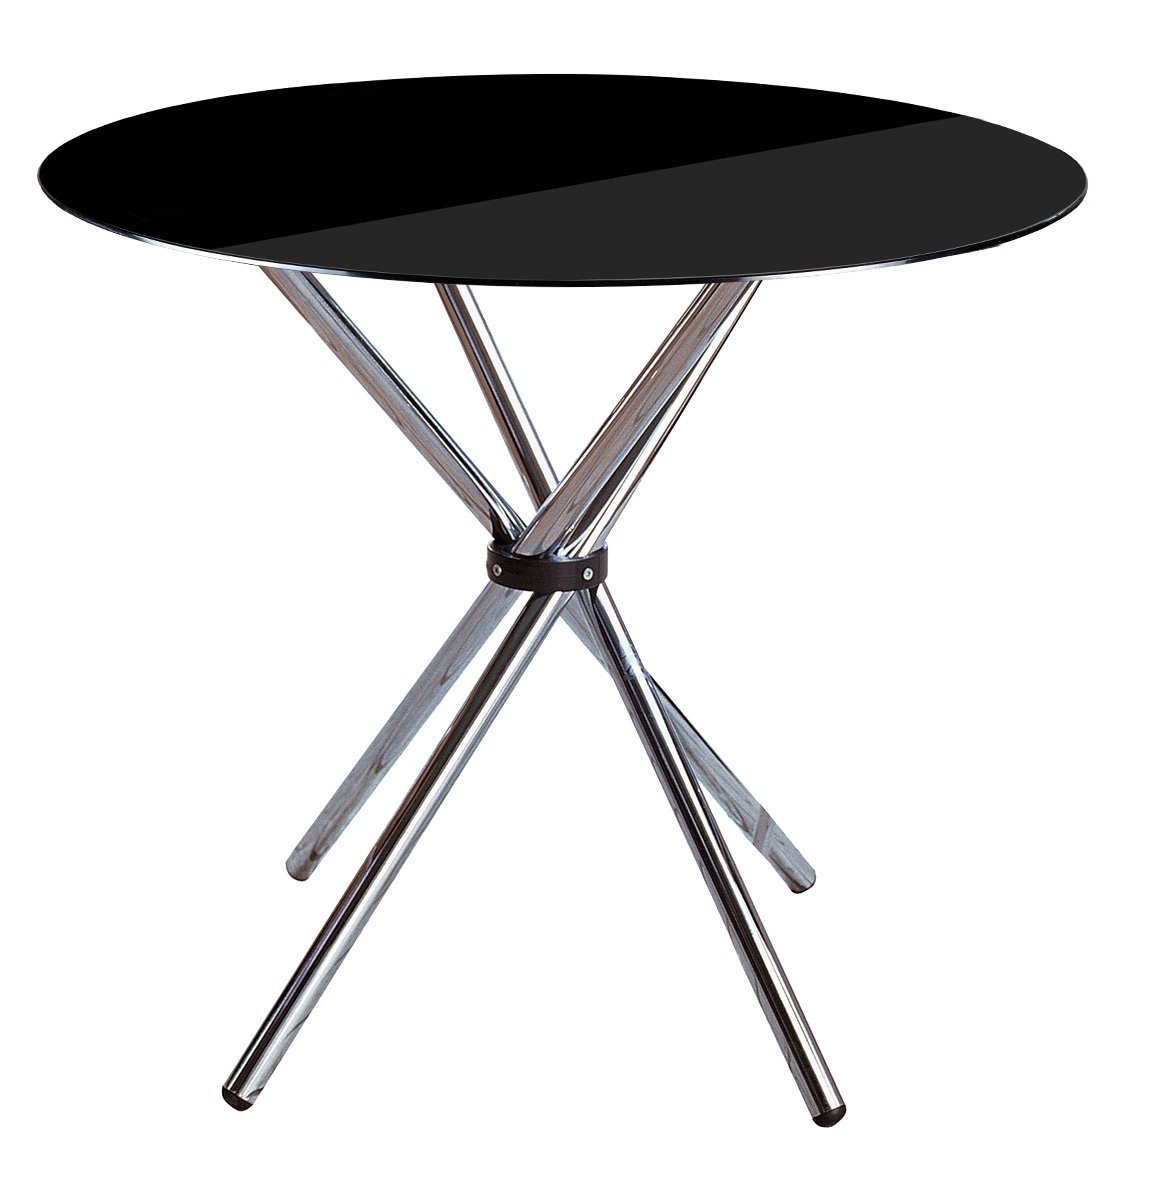 Premier Housewares Round Dining Table - 77 x 90 x 90 cm, Black 2402770